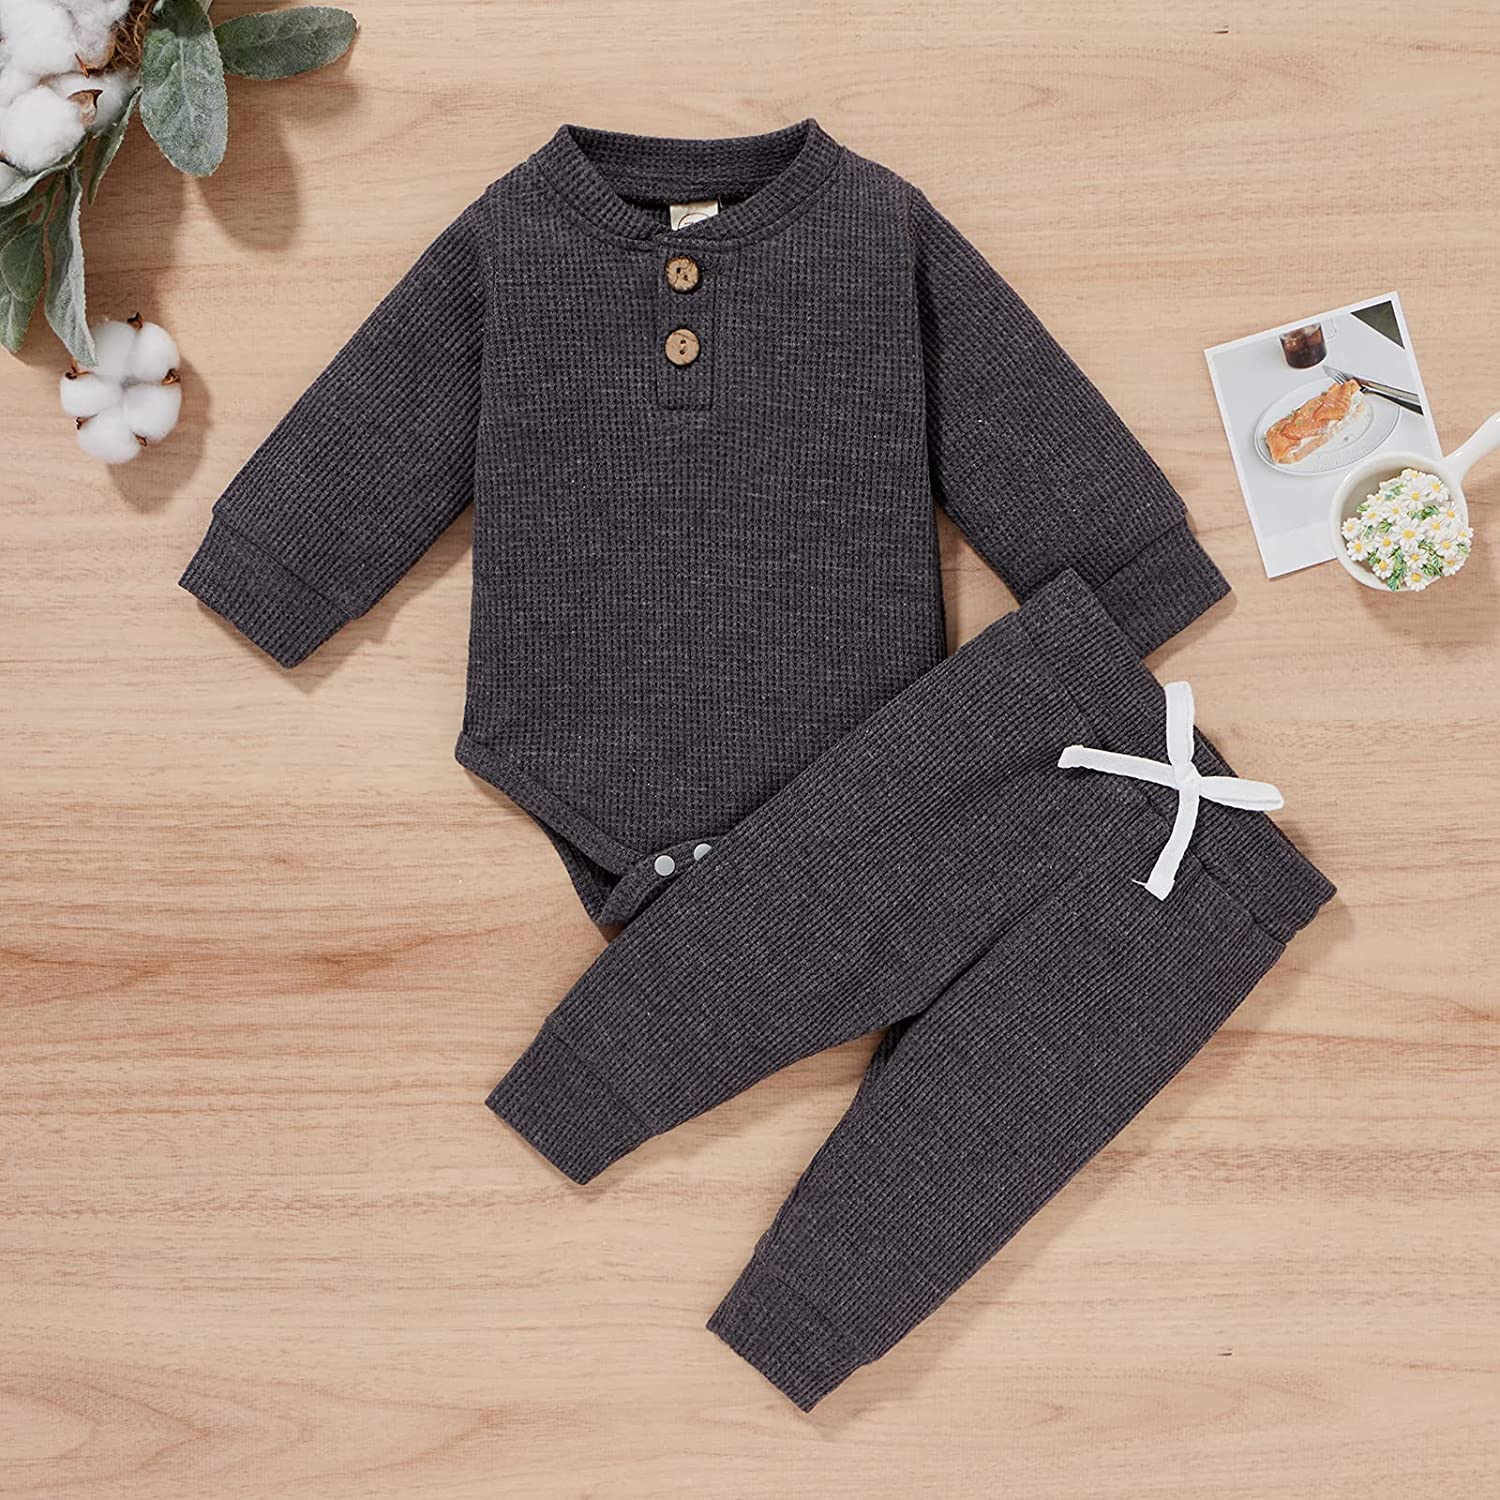 Toddler Baby Boy Girls Autumn Clothes Unisex Ribbed Long Sleeve Romper Tops+Elastic Long Pant Leggings Solid Outfit Set